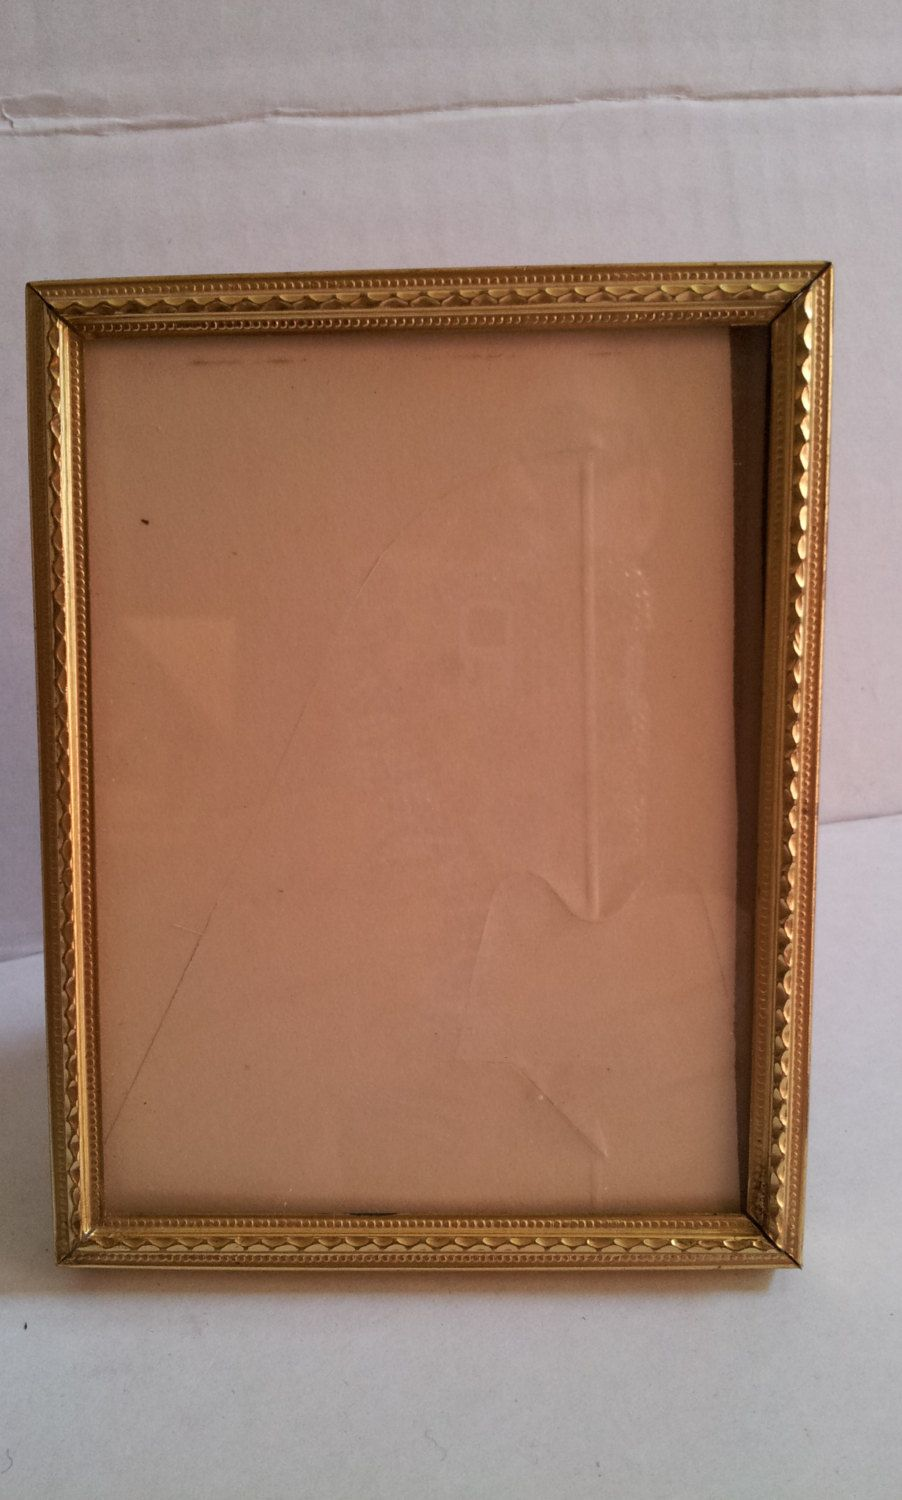 Small Gold Picture Frame Vintage 4 1/4 x 3 1/4 by ...